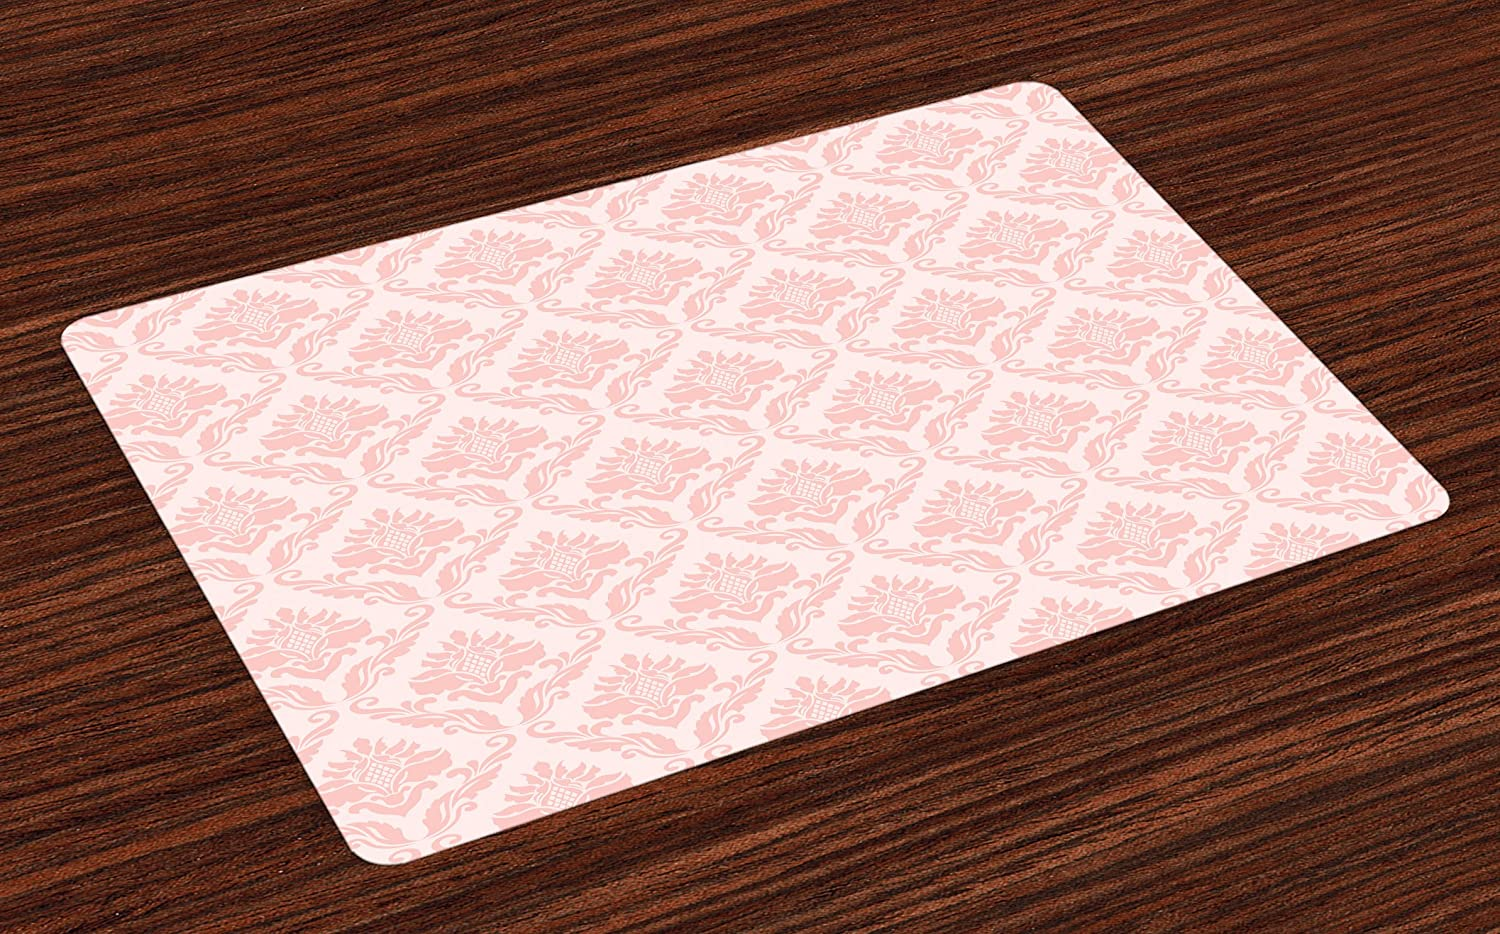 Lunarable Blush Place Mats Set of 4, Damask Motif Retro Design of Floral Pattern with Swirling Petals and Branches, Washable Fabric Placemats for Dining Room Kitchen Table Decor, Pink White